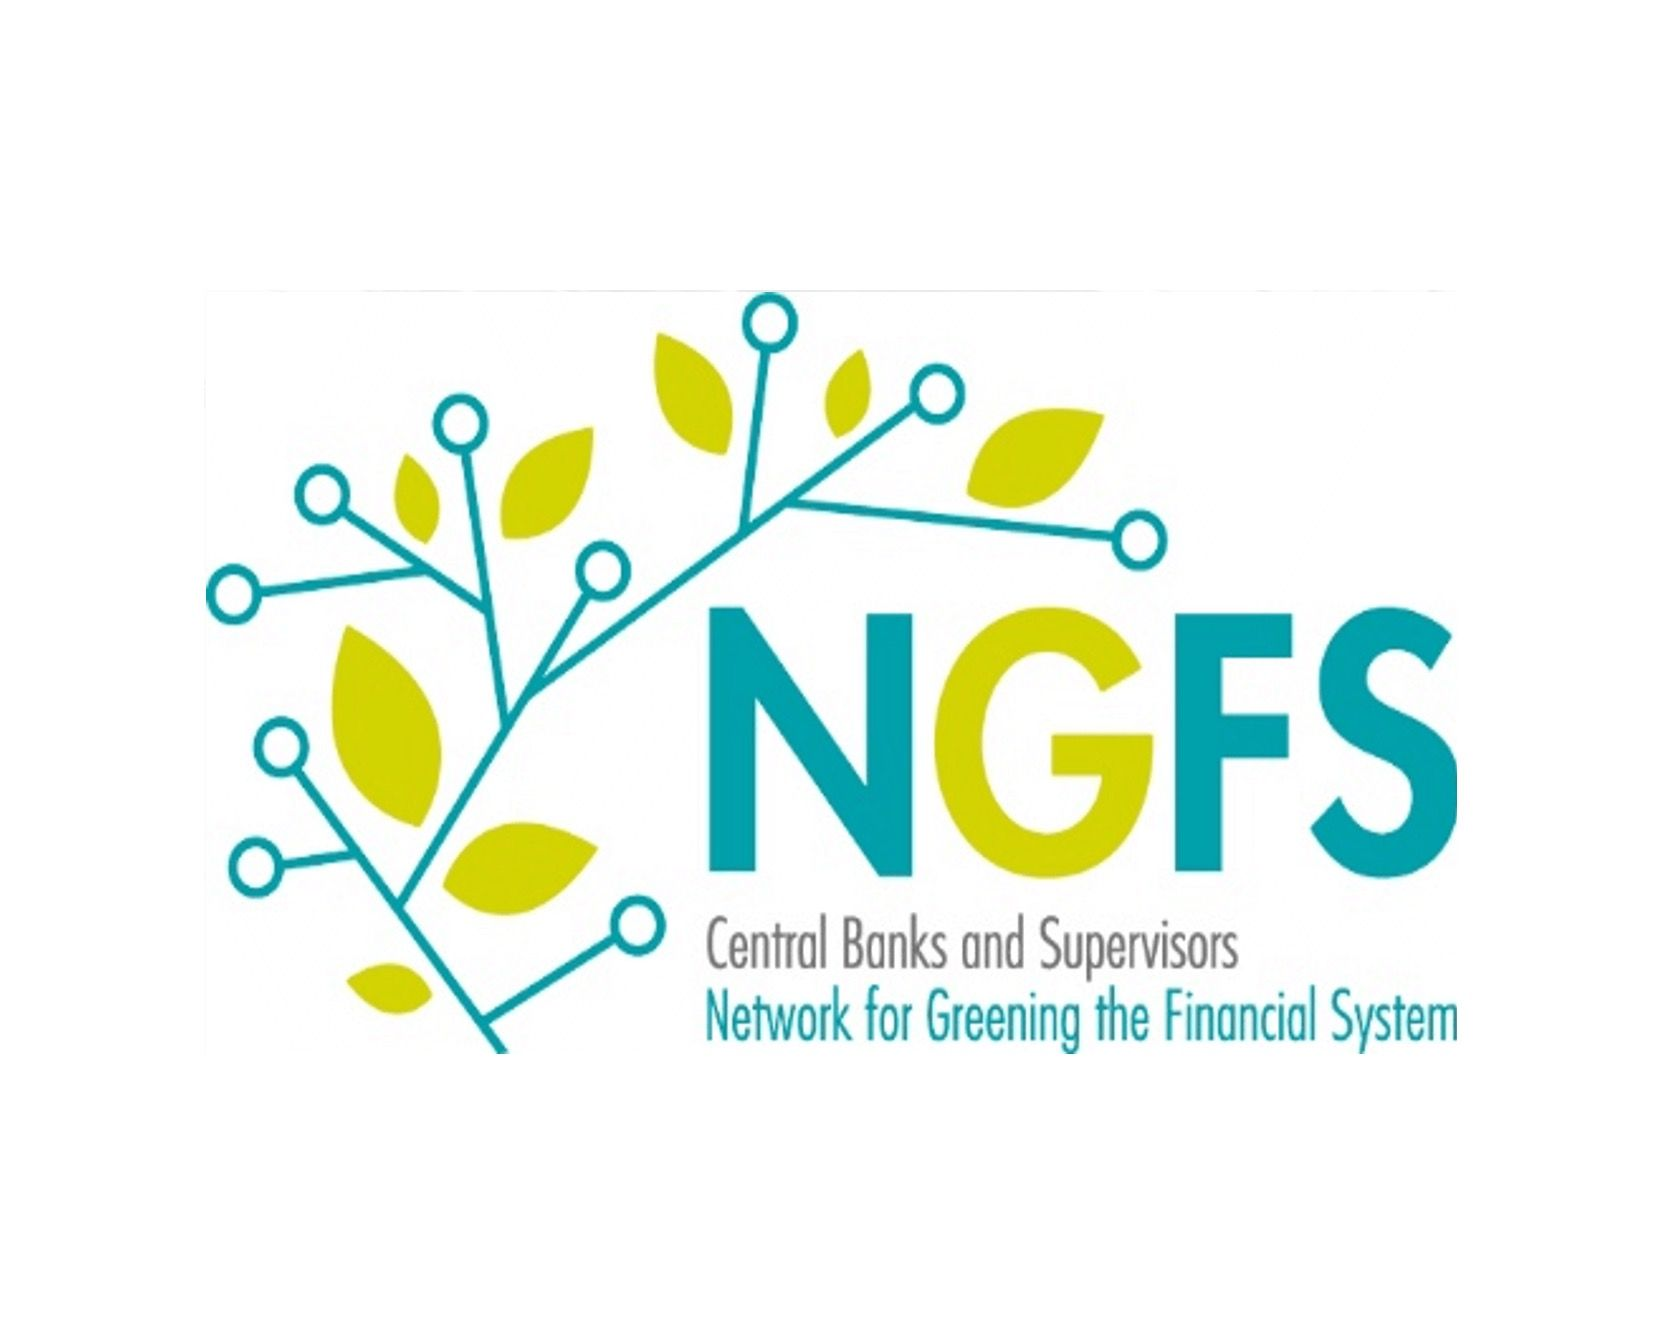 The DFSA joins Network for Greening the Financial System